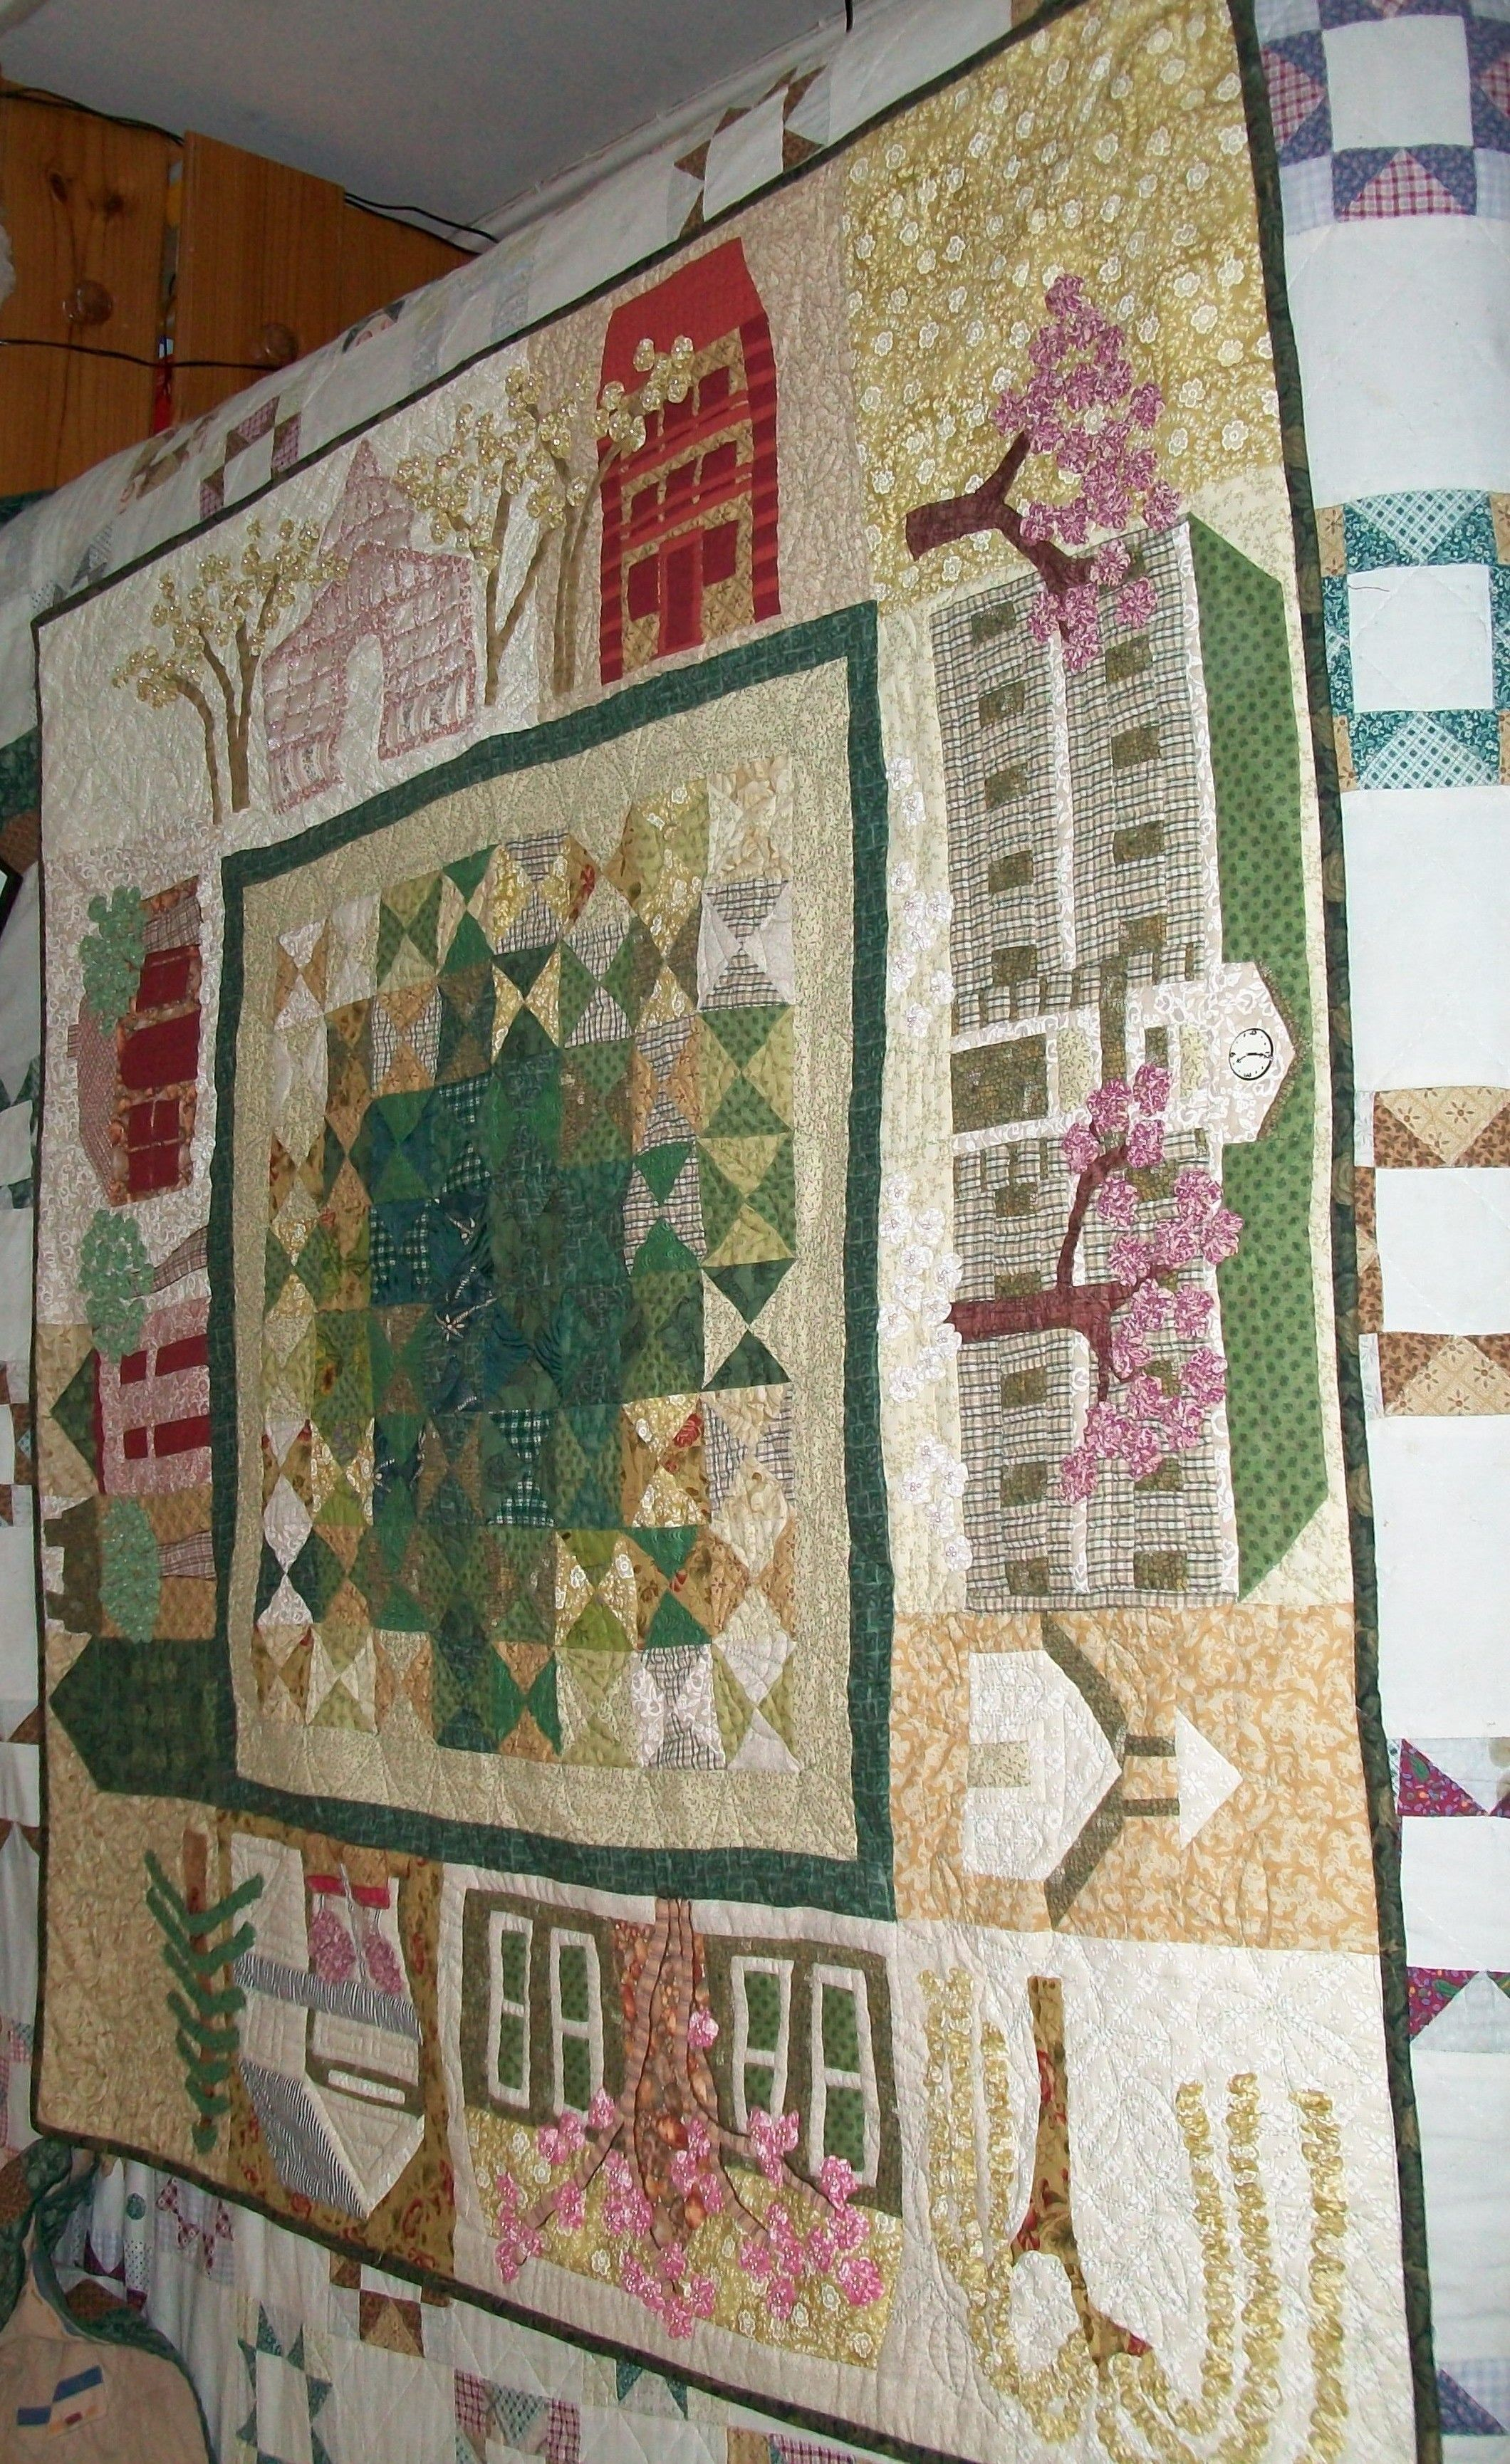 blog mini have web bongean used collected we wall and quilt that years even smith i random ebay for stores on primitive from lisa b img antique gatherings s the show sometimes through yardsticks quilts